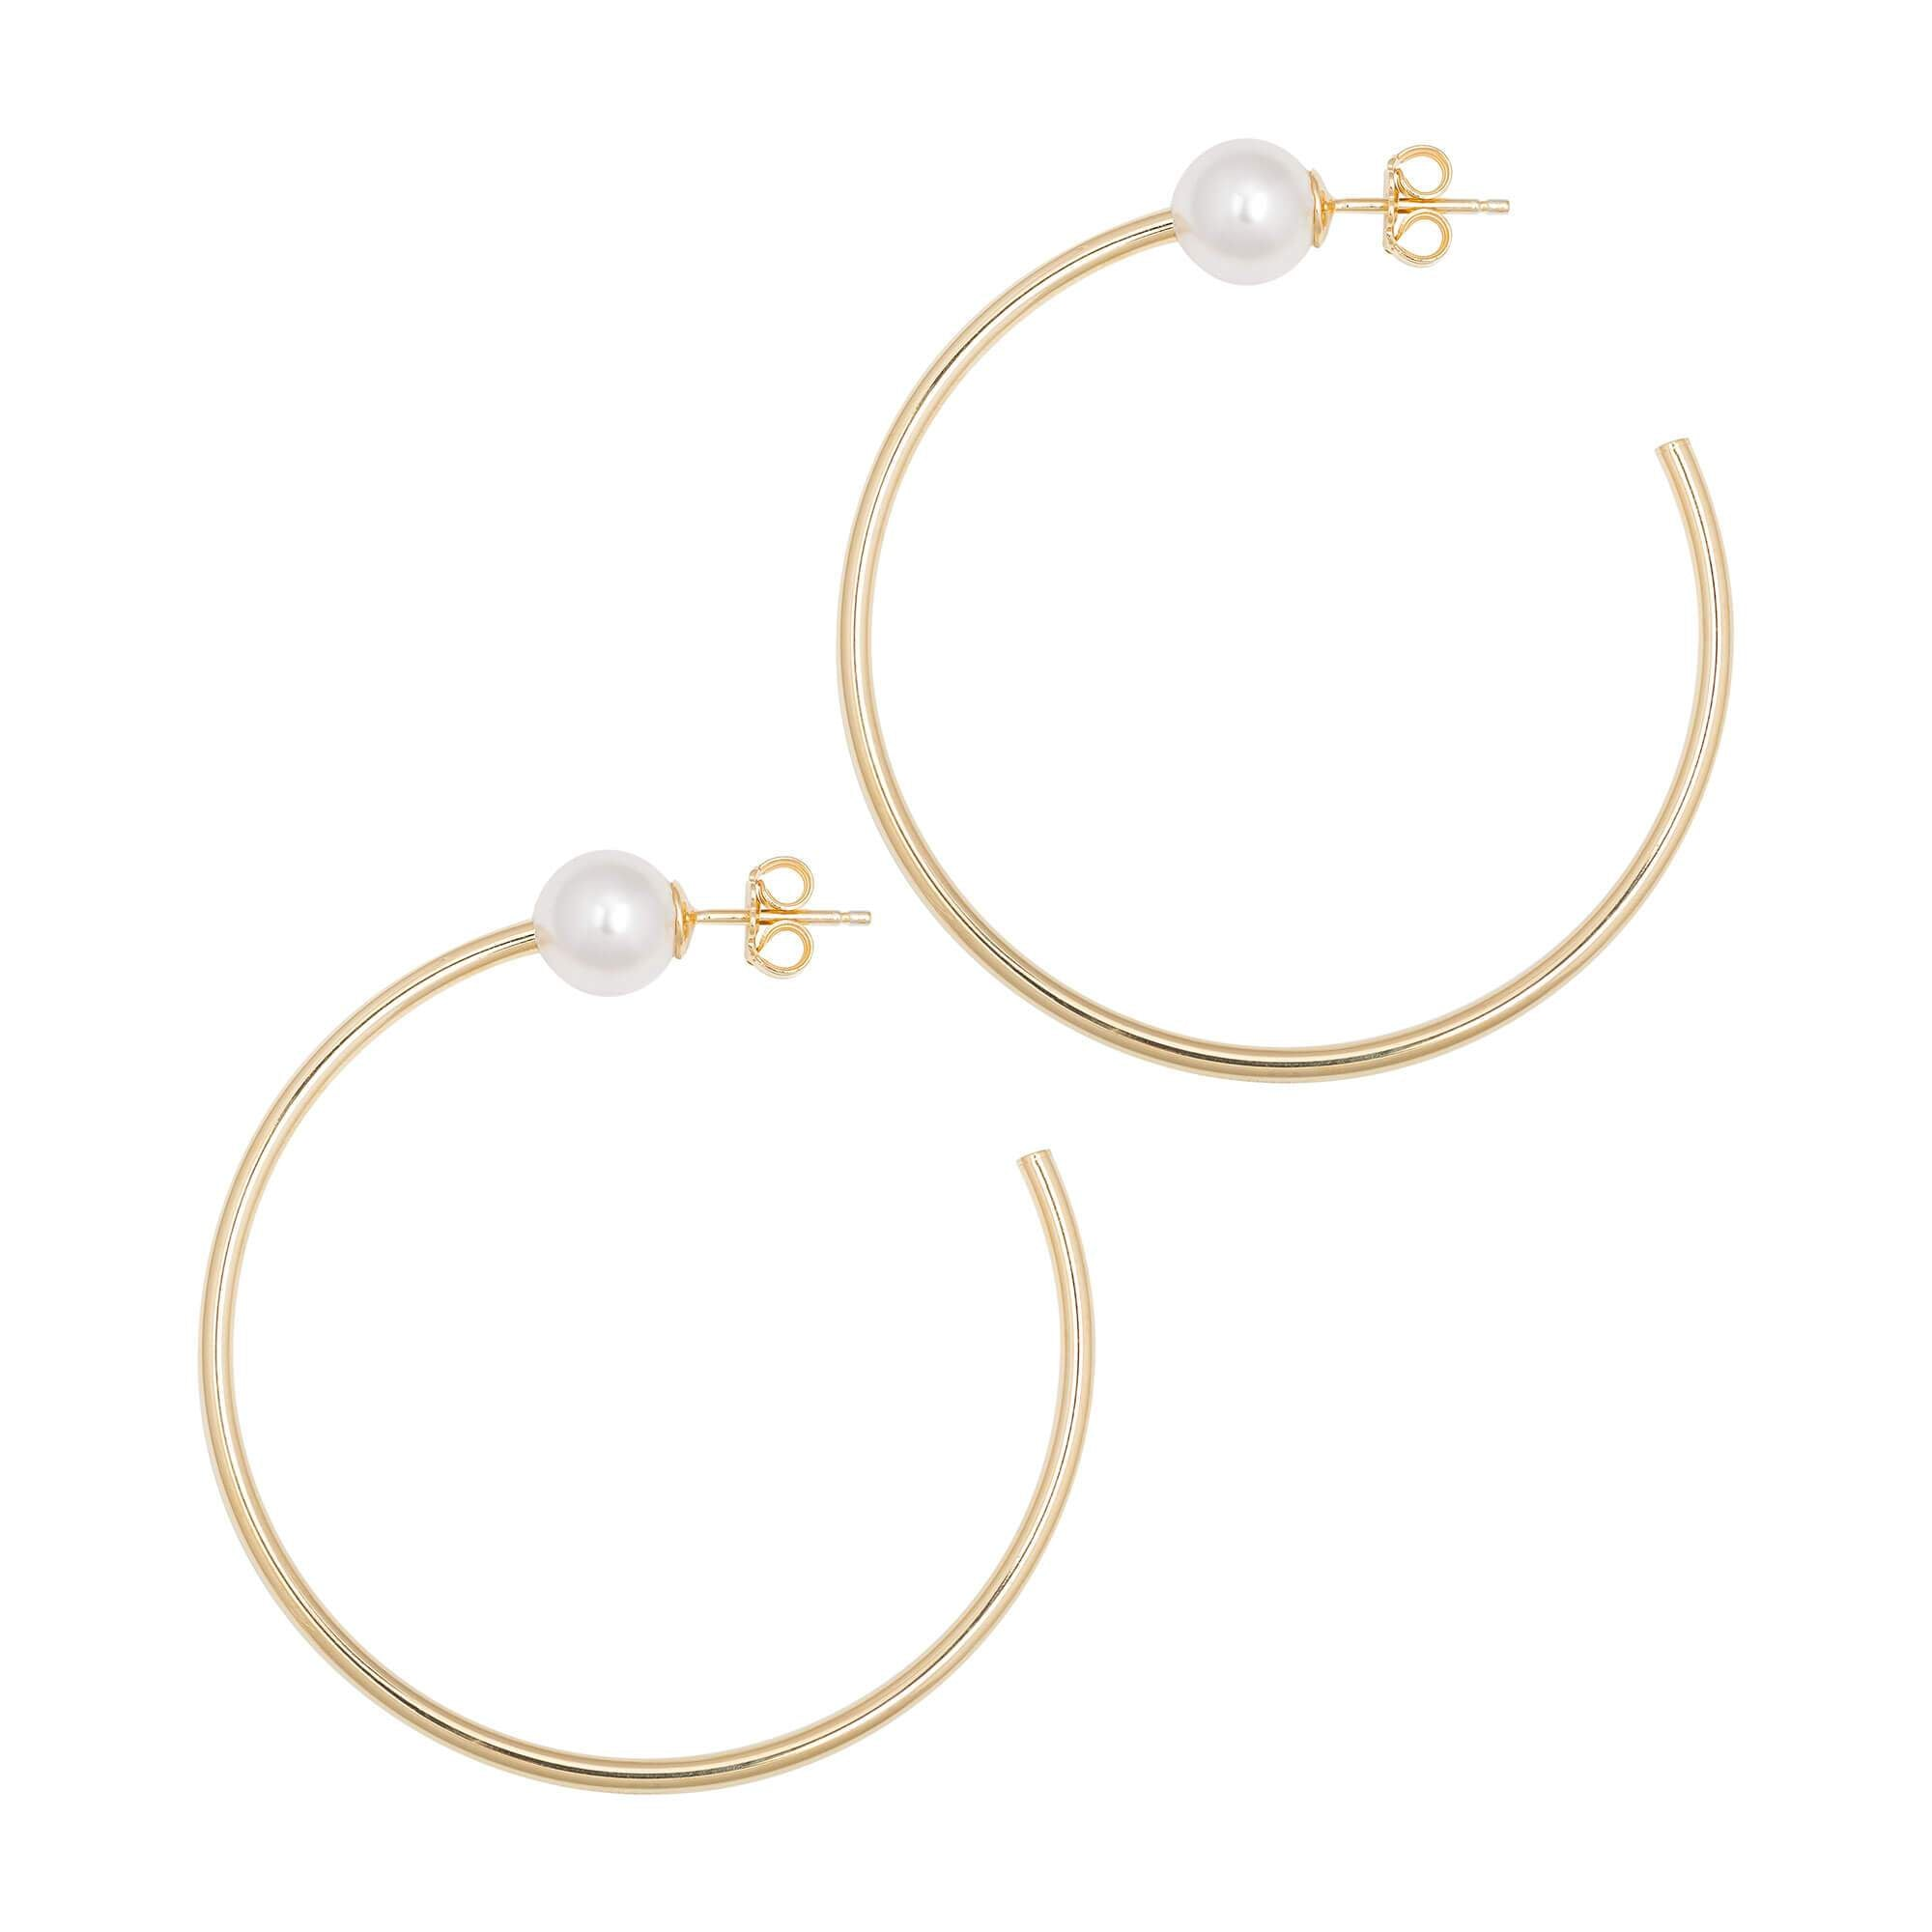 La PERLA Pearl Hoops - Gold - The Hoop Station 925 Sterling Silver Hoop Earrings Gold Huggies